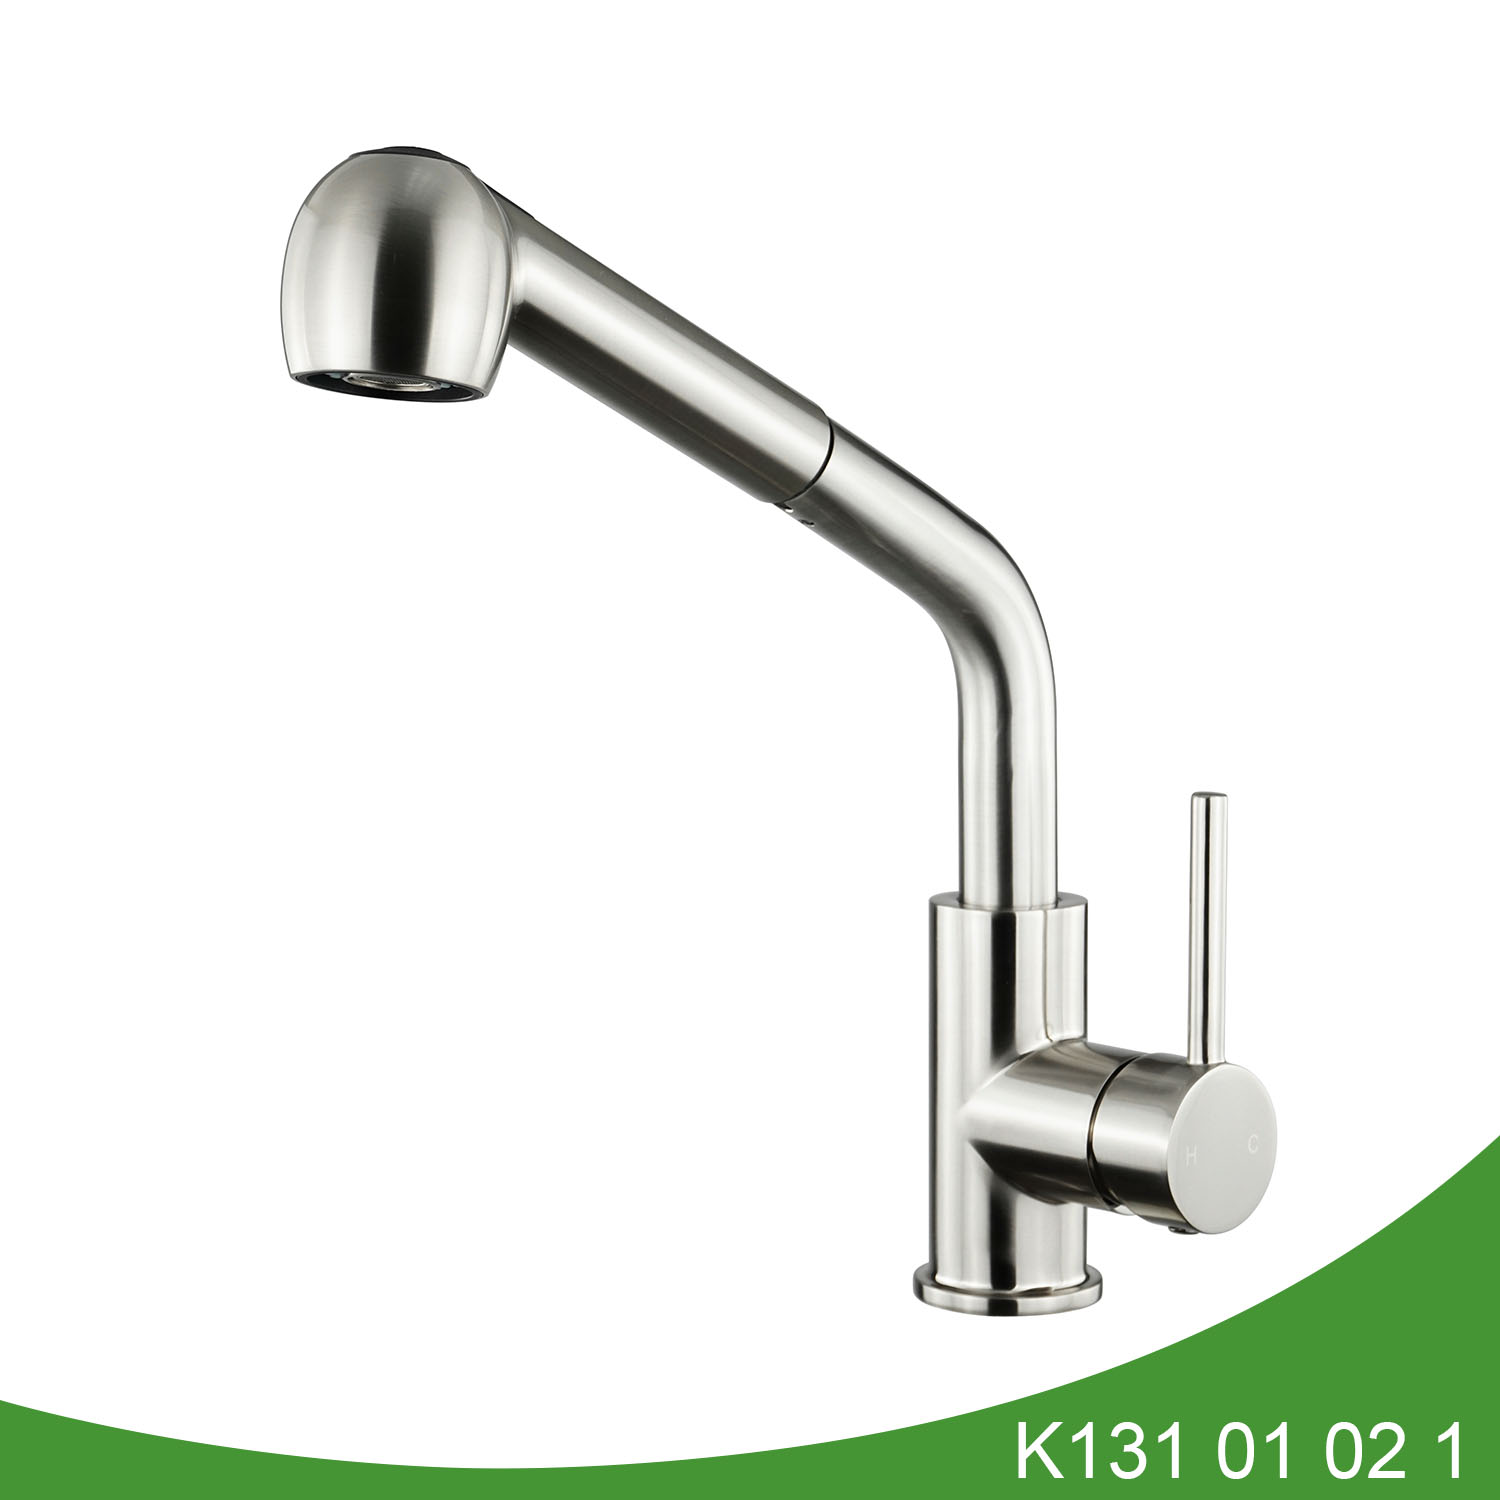 Brass pull out kitchen faucet - K131 01 02 1